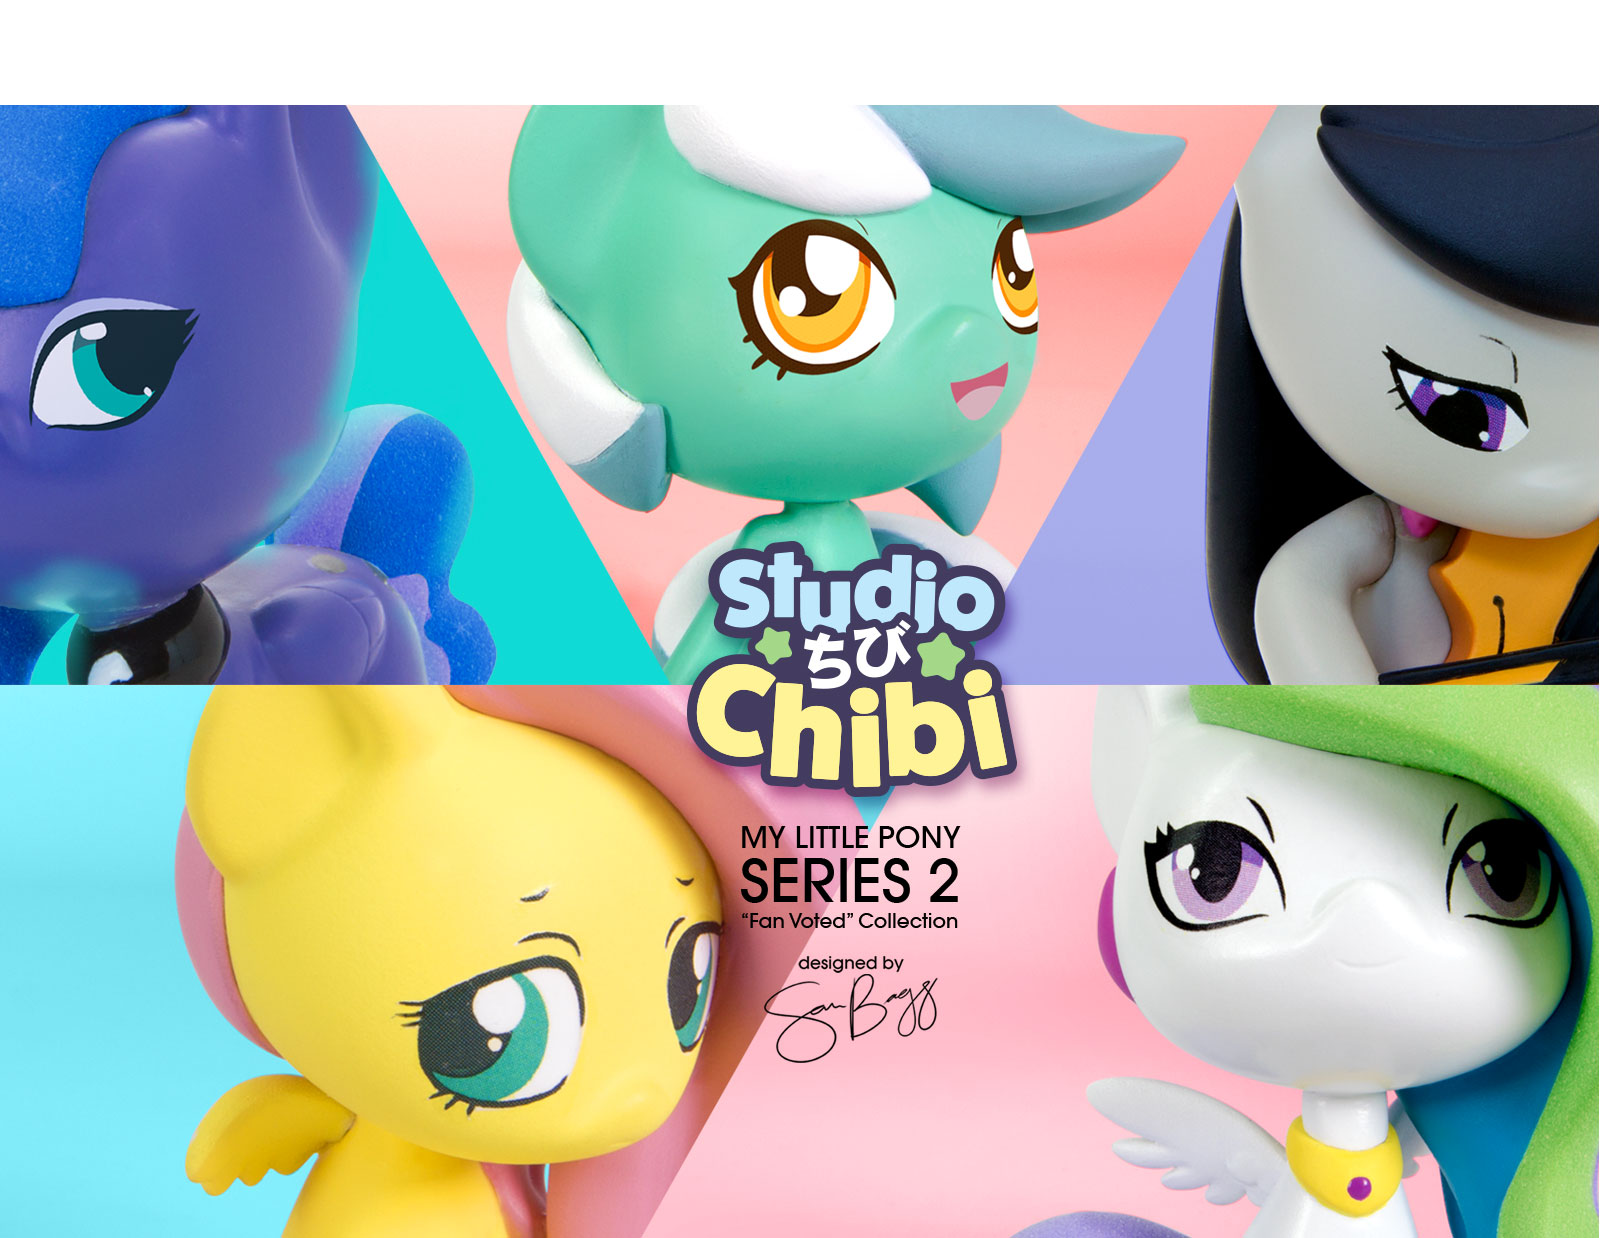 Pre Sale Starts For Series 2 Chibi Vinyl Figures By